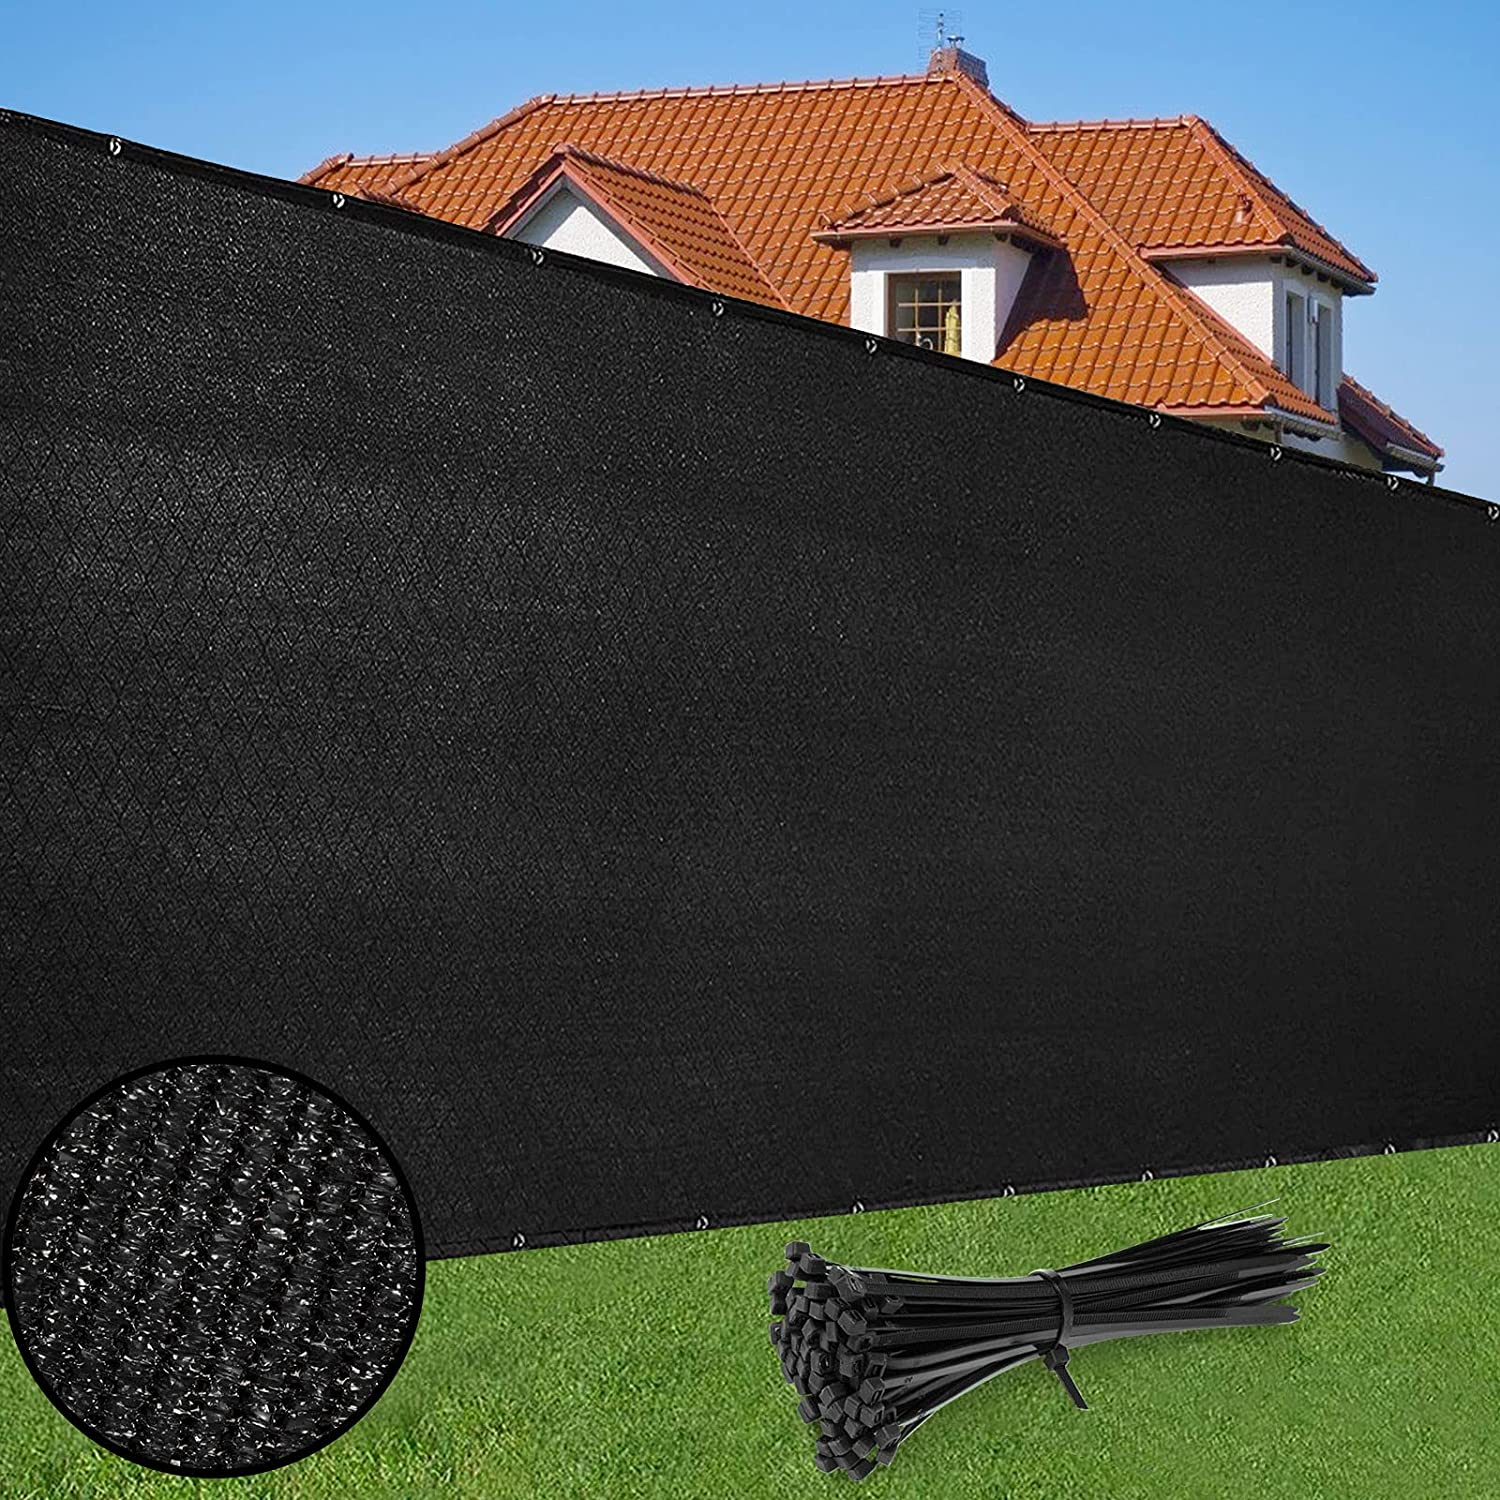 Duerer Privacy Screen Fence 4' x 50' Heavy Duty Garden Windscreen 90% Blockage Shade Cover UV Protection Outdoor Panel, Backyard, Patio Protection Fencing Mesh Net Cable Ties (Black)